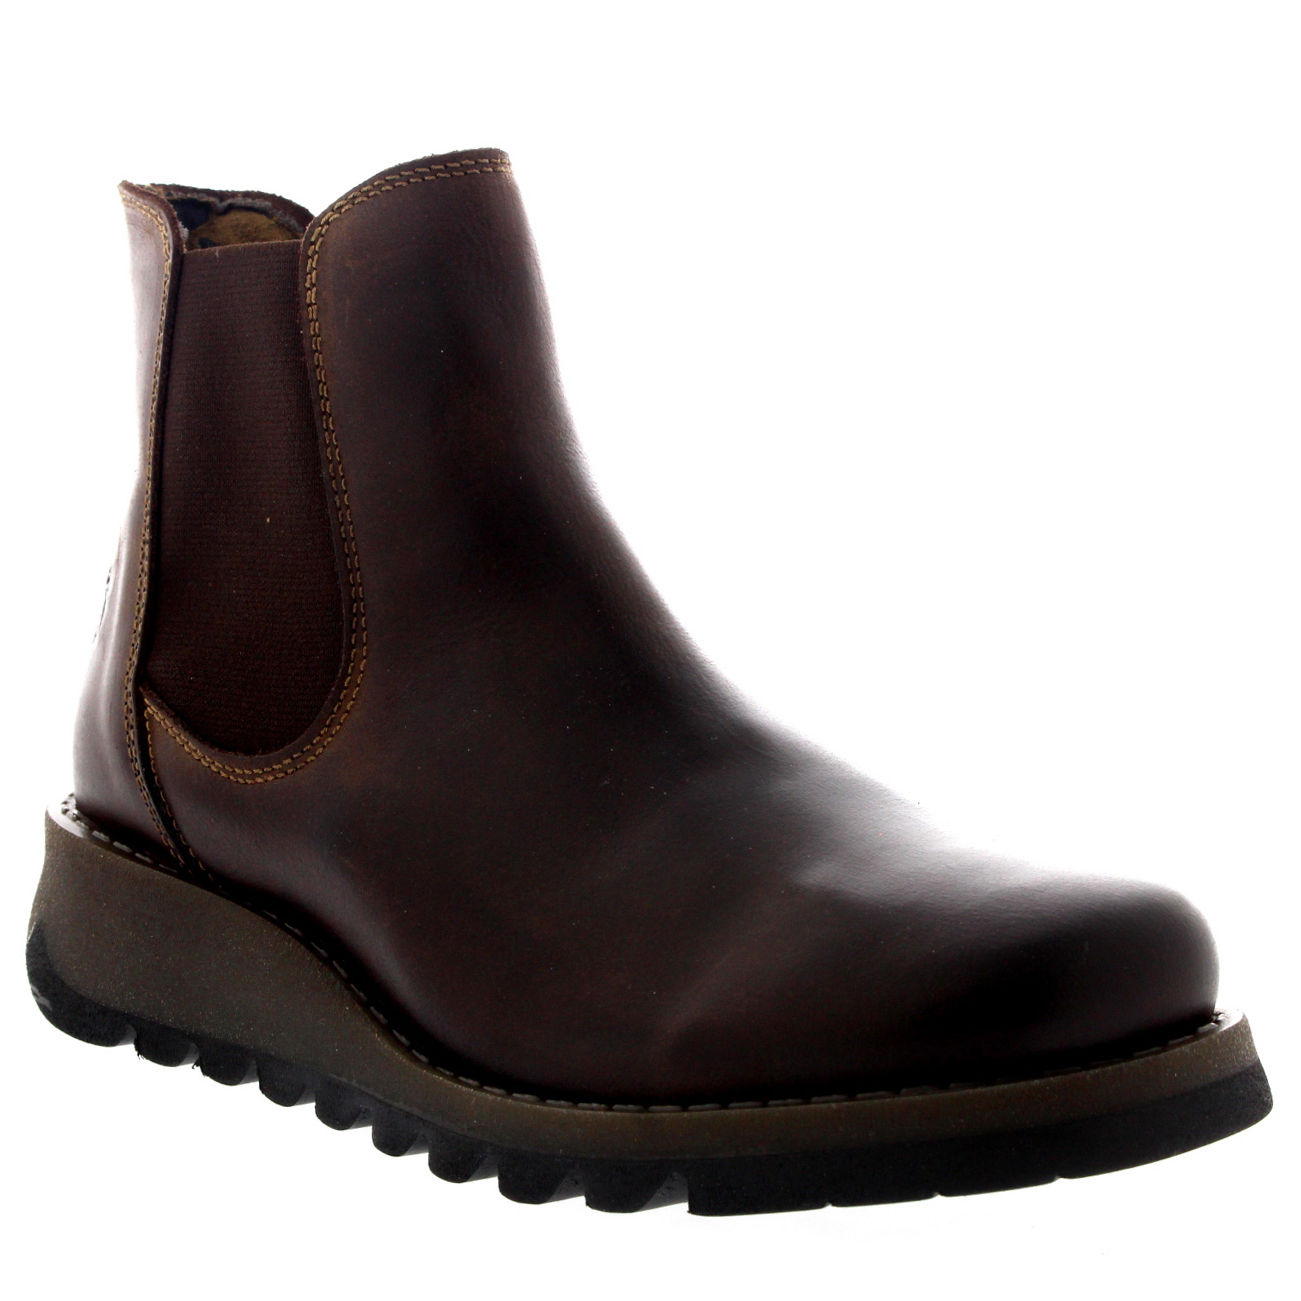 Chelsea boots are like a fine (high proof) cognac — the taste is acquired and easy to over-do it your first time around. Just as many gents started rocking suits again in the menswear boom, this.